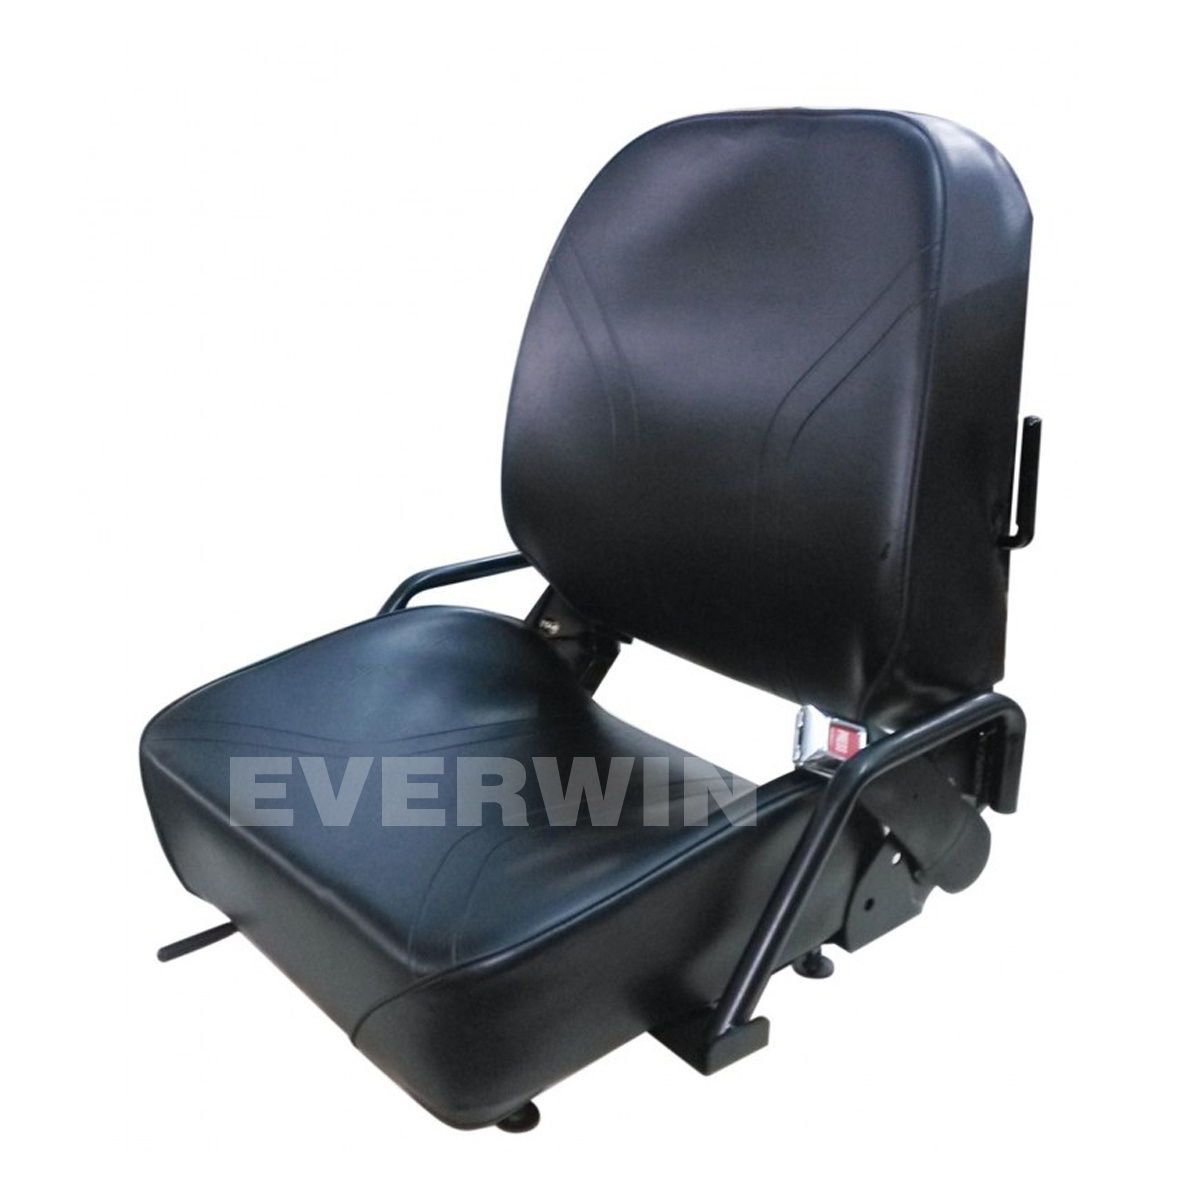 Universal Forklift Seat with Hip Restraints